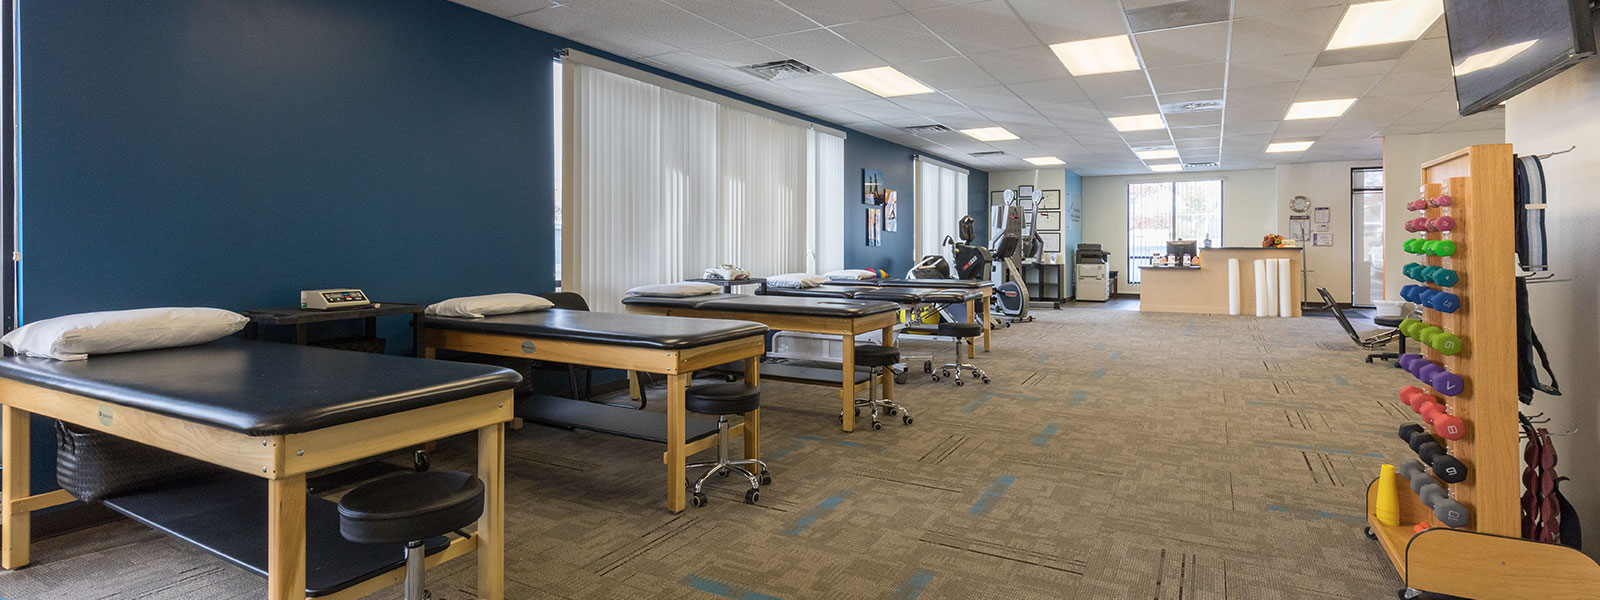 West Jordan Physical Therapy